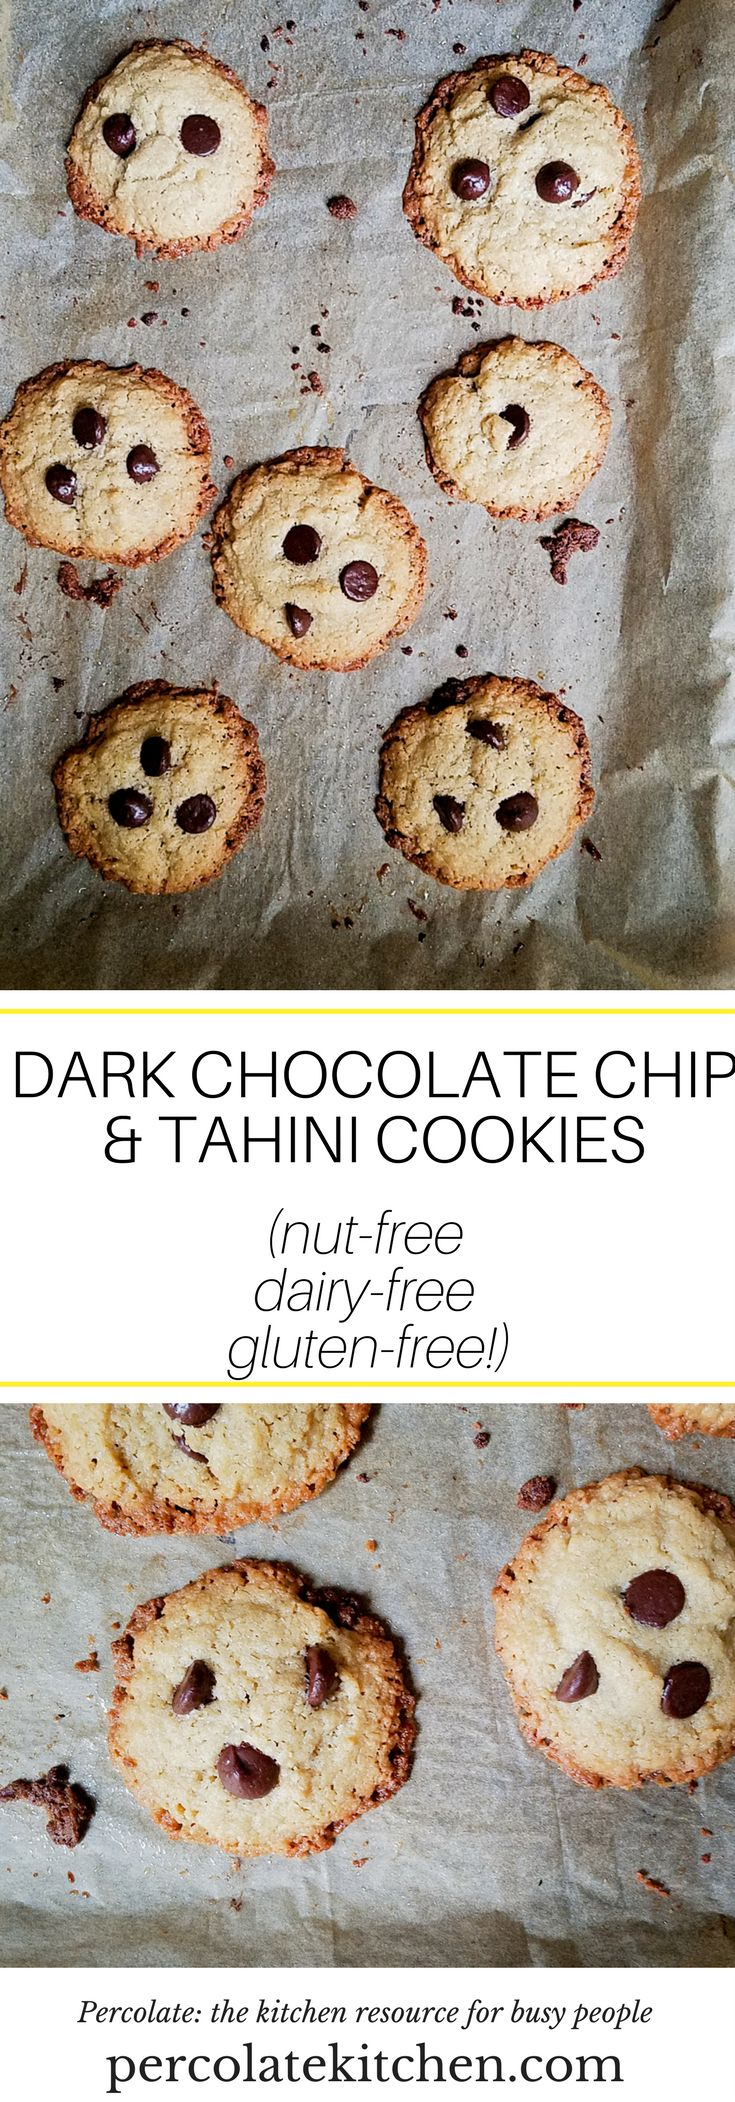 This 6-ingredient Dark Chocolate Chip and Tahini Cookie is nut-free, dairy-free, and gluten-free! It's an easy and simple recipe to make and SO tasty!